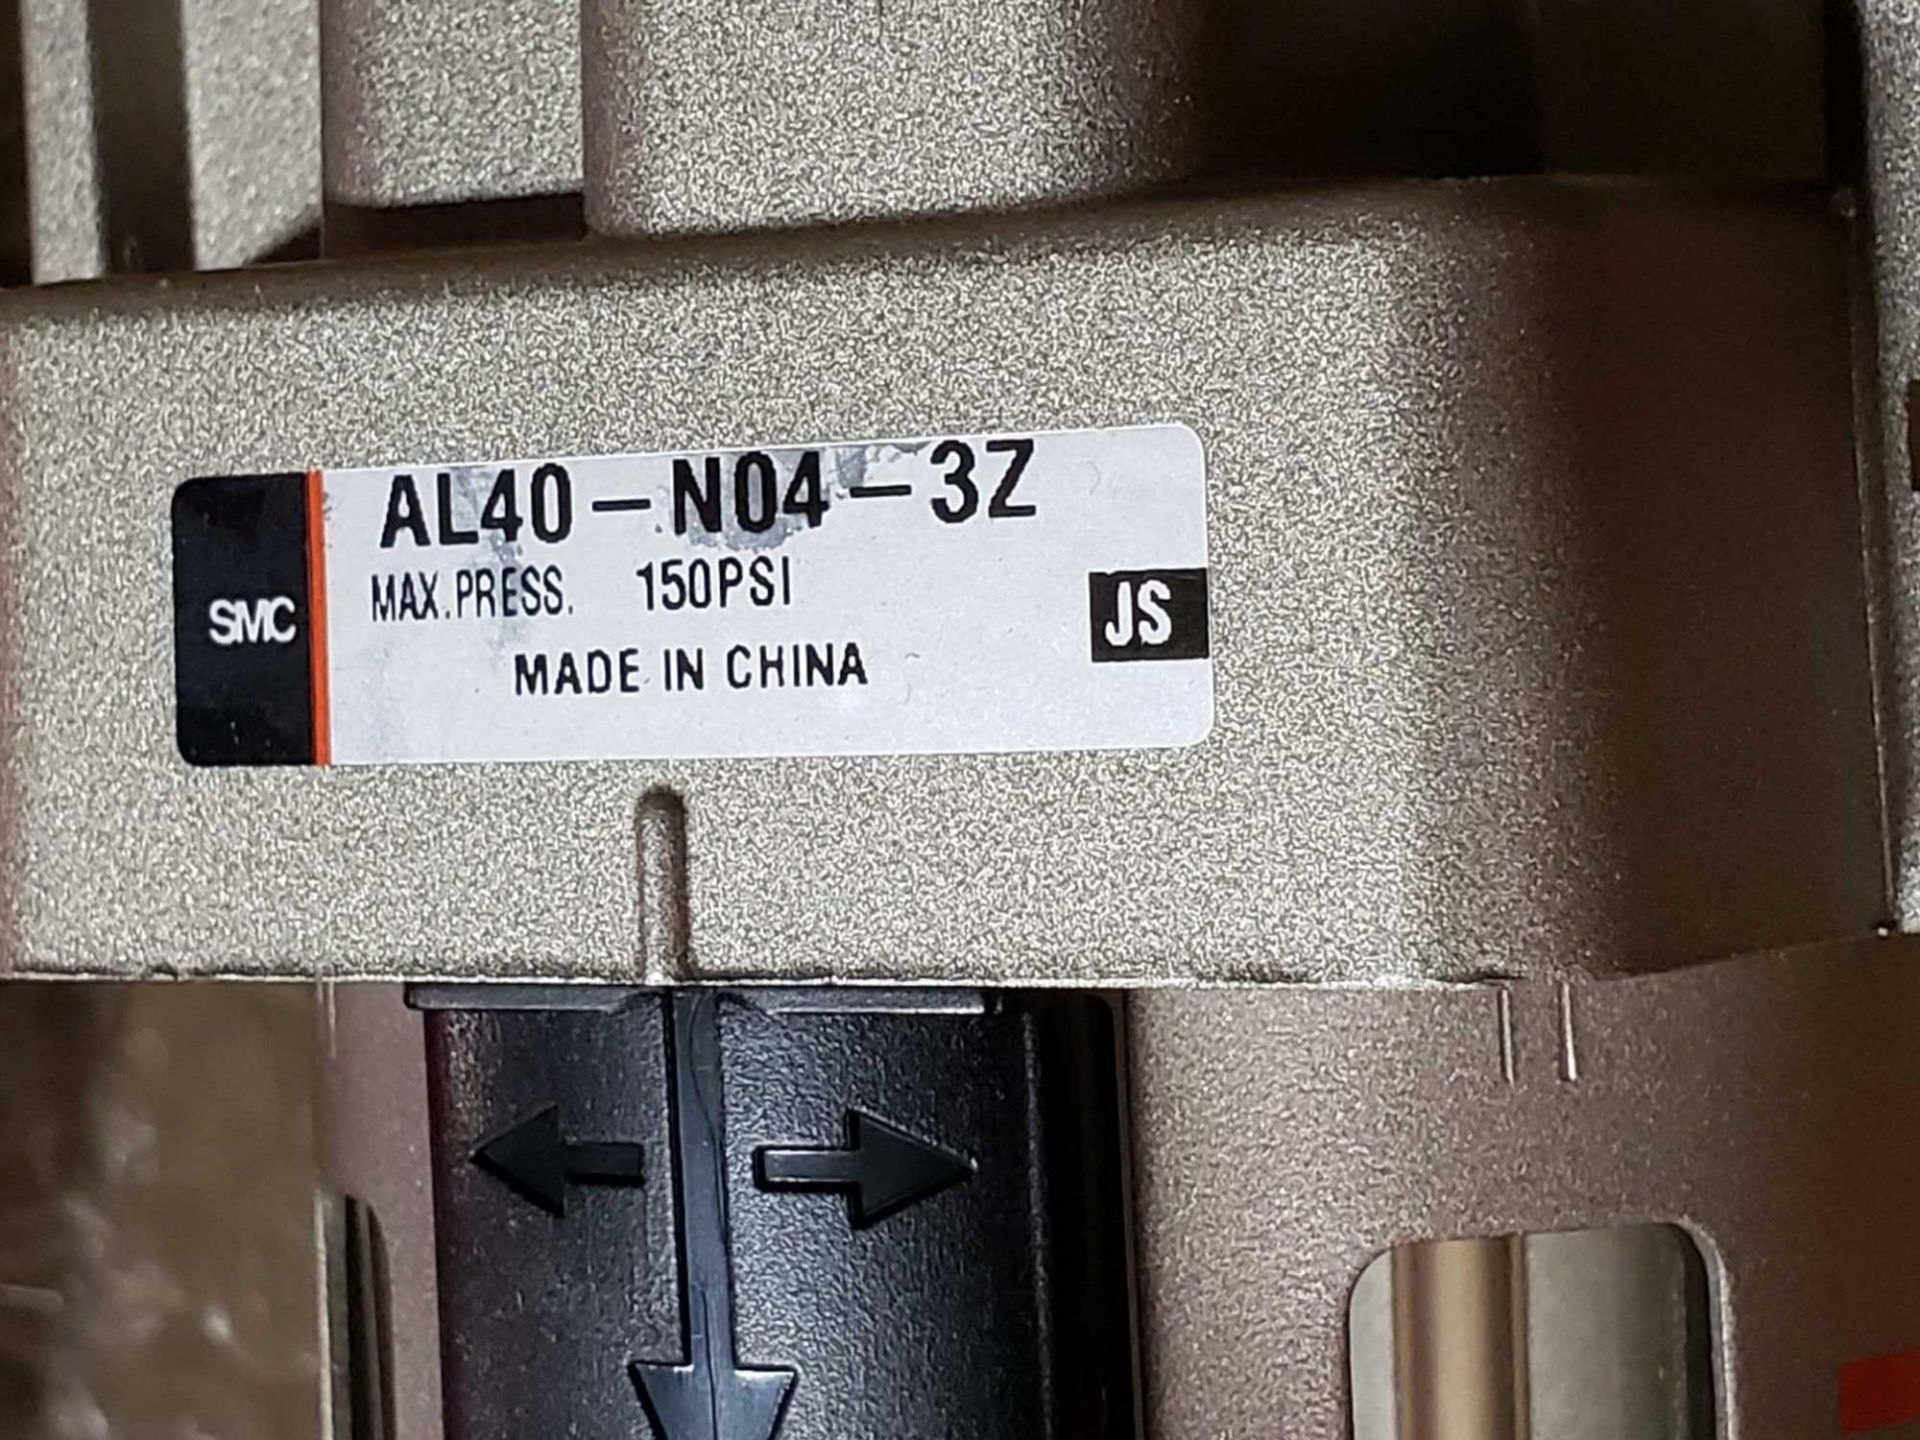 Lot 8 - Qty 2 - SMC filter housing model AL40-N04-3Z. New as pictured.